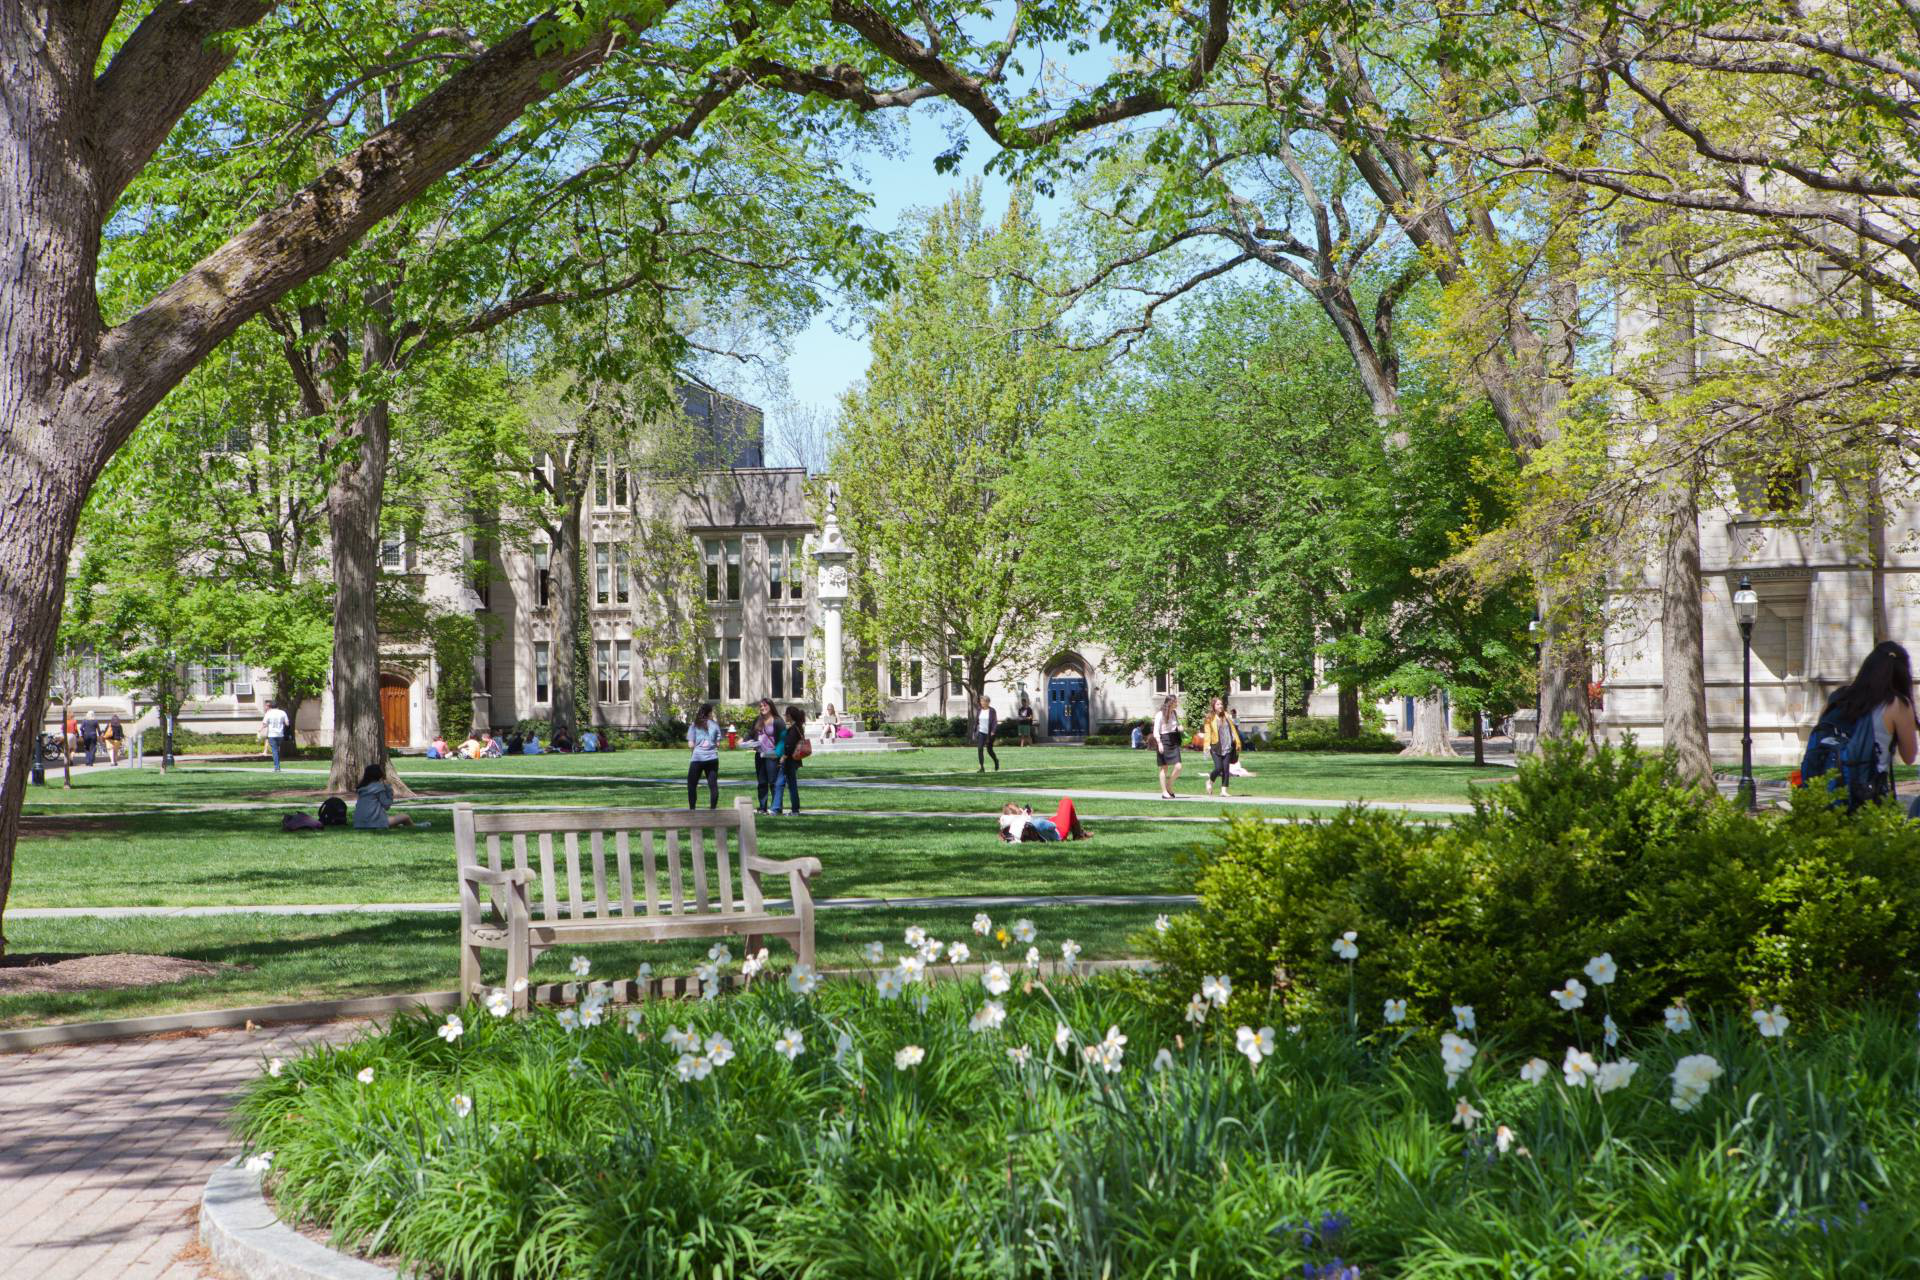 People in chapel, Dickinson, and McCosh courtyard